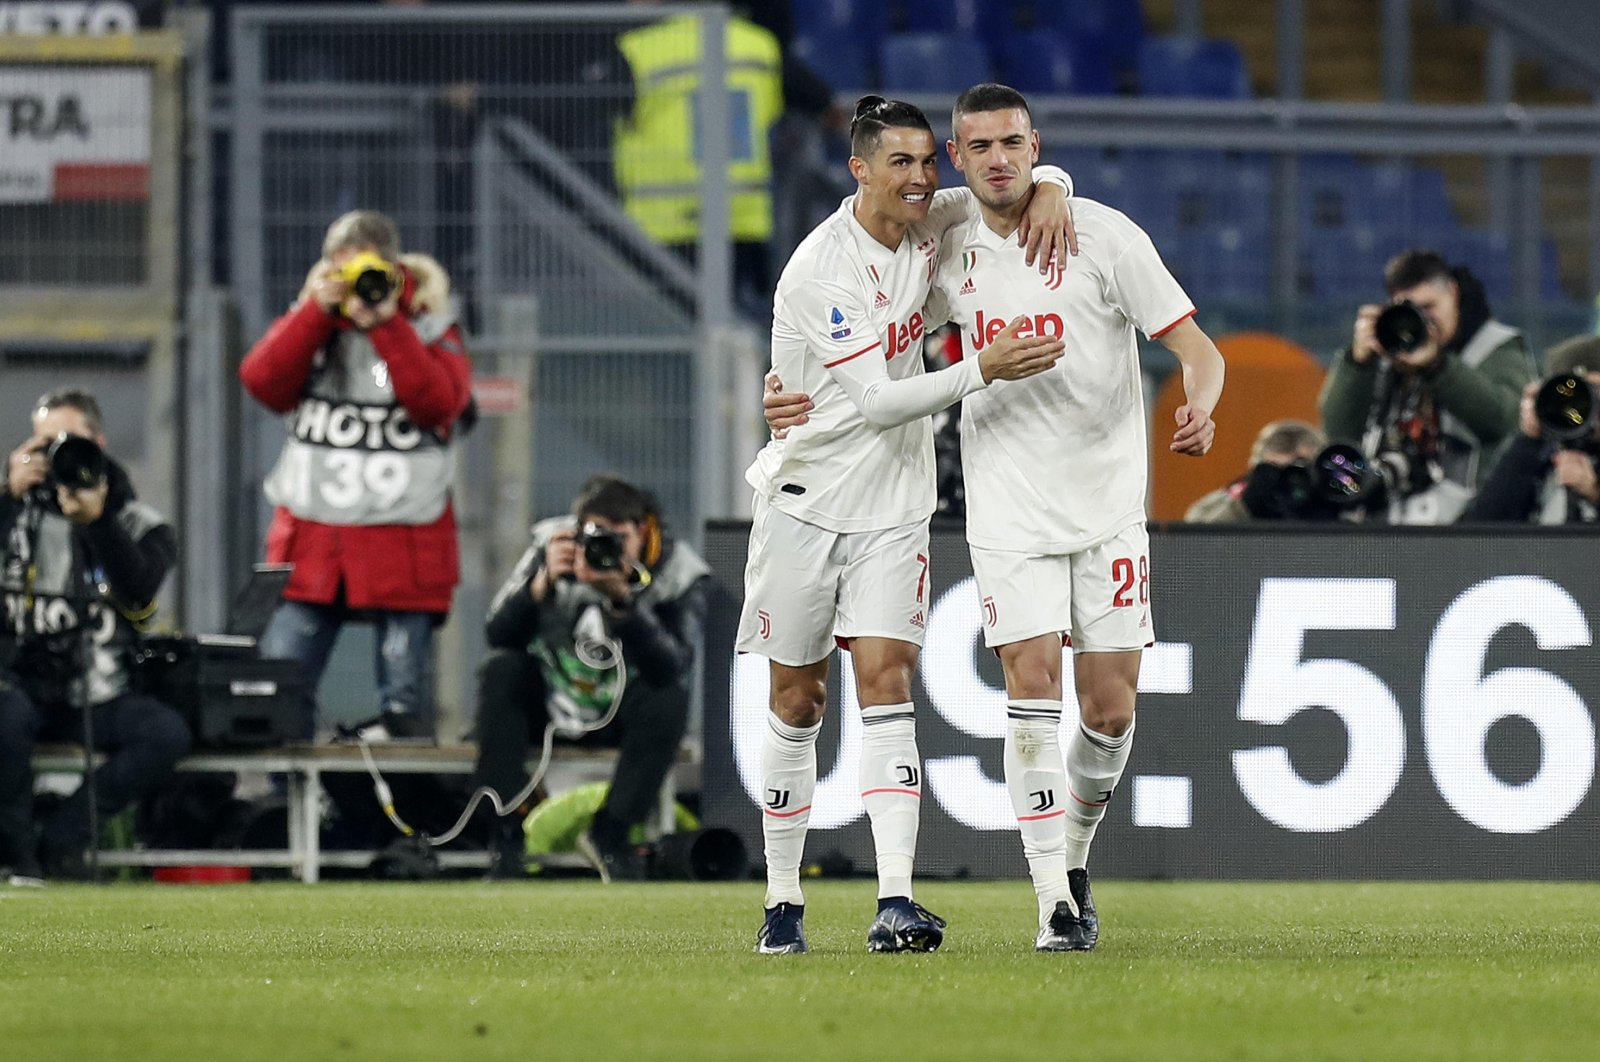 Juventus striker Cristiano Ronaldo (L) celebrates his goal with Merih Demiral during the Serie A soccer match between Roma and Juventus at Olimpico Stadium in Rome, Italy, Jan. 12, 2020. (EPA Photo)